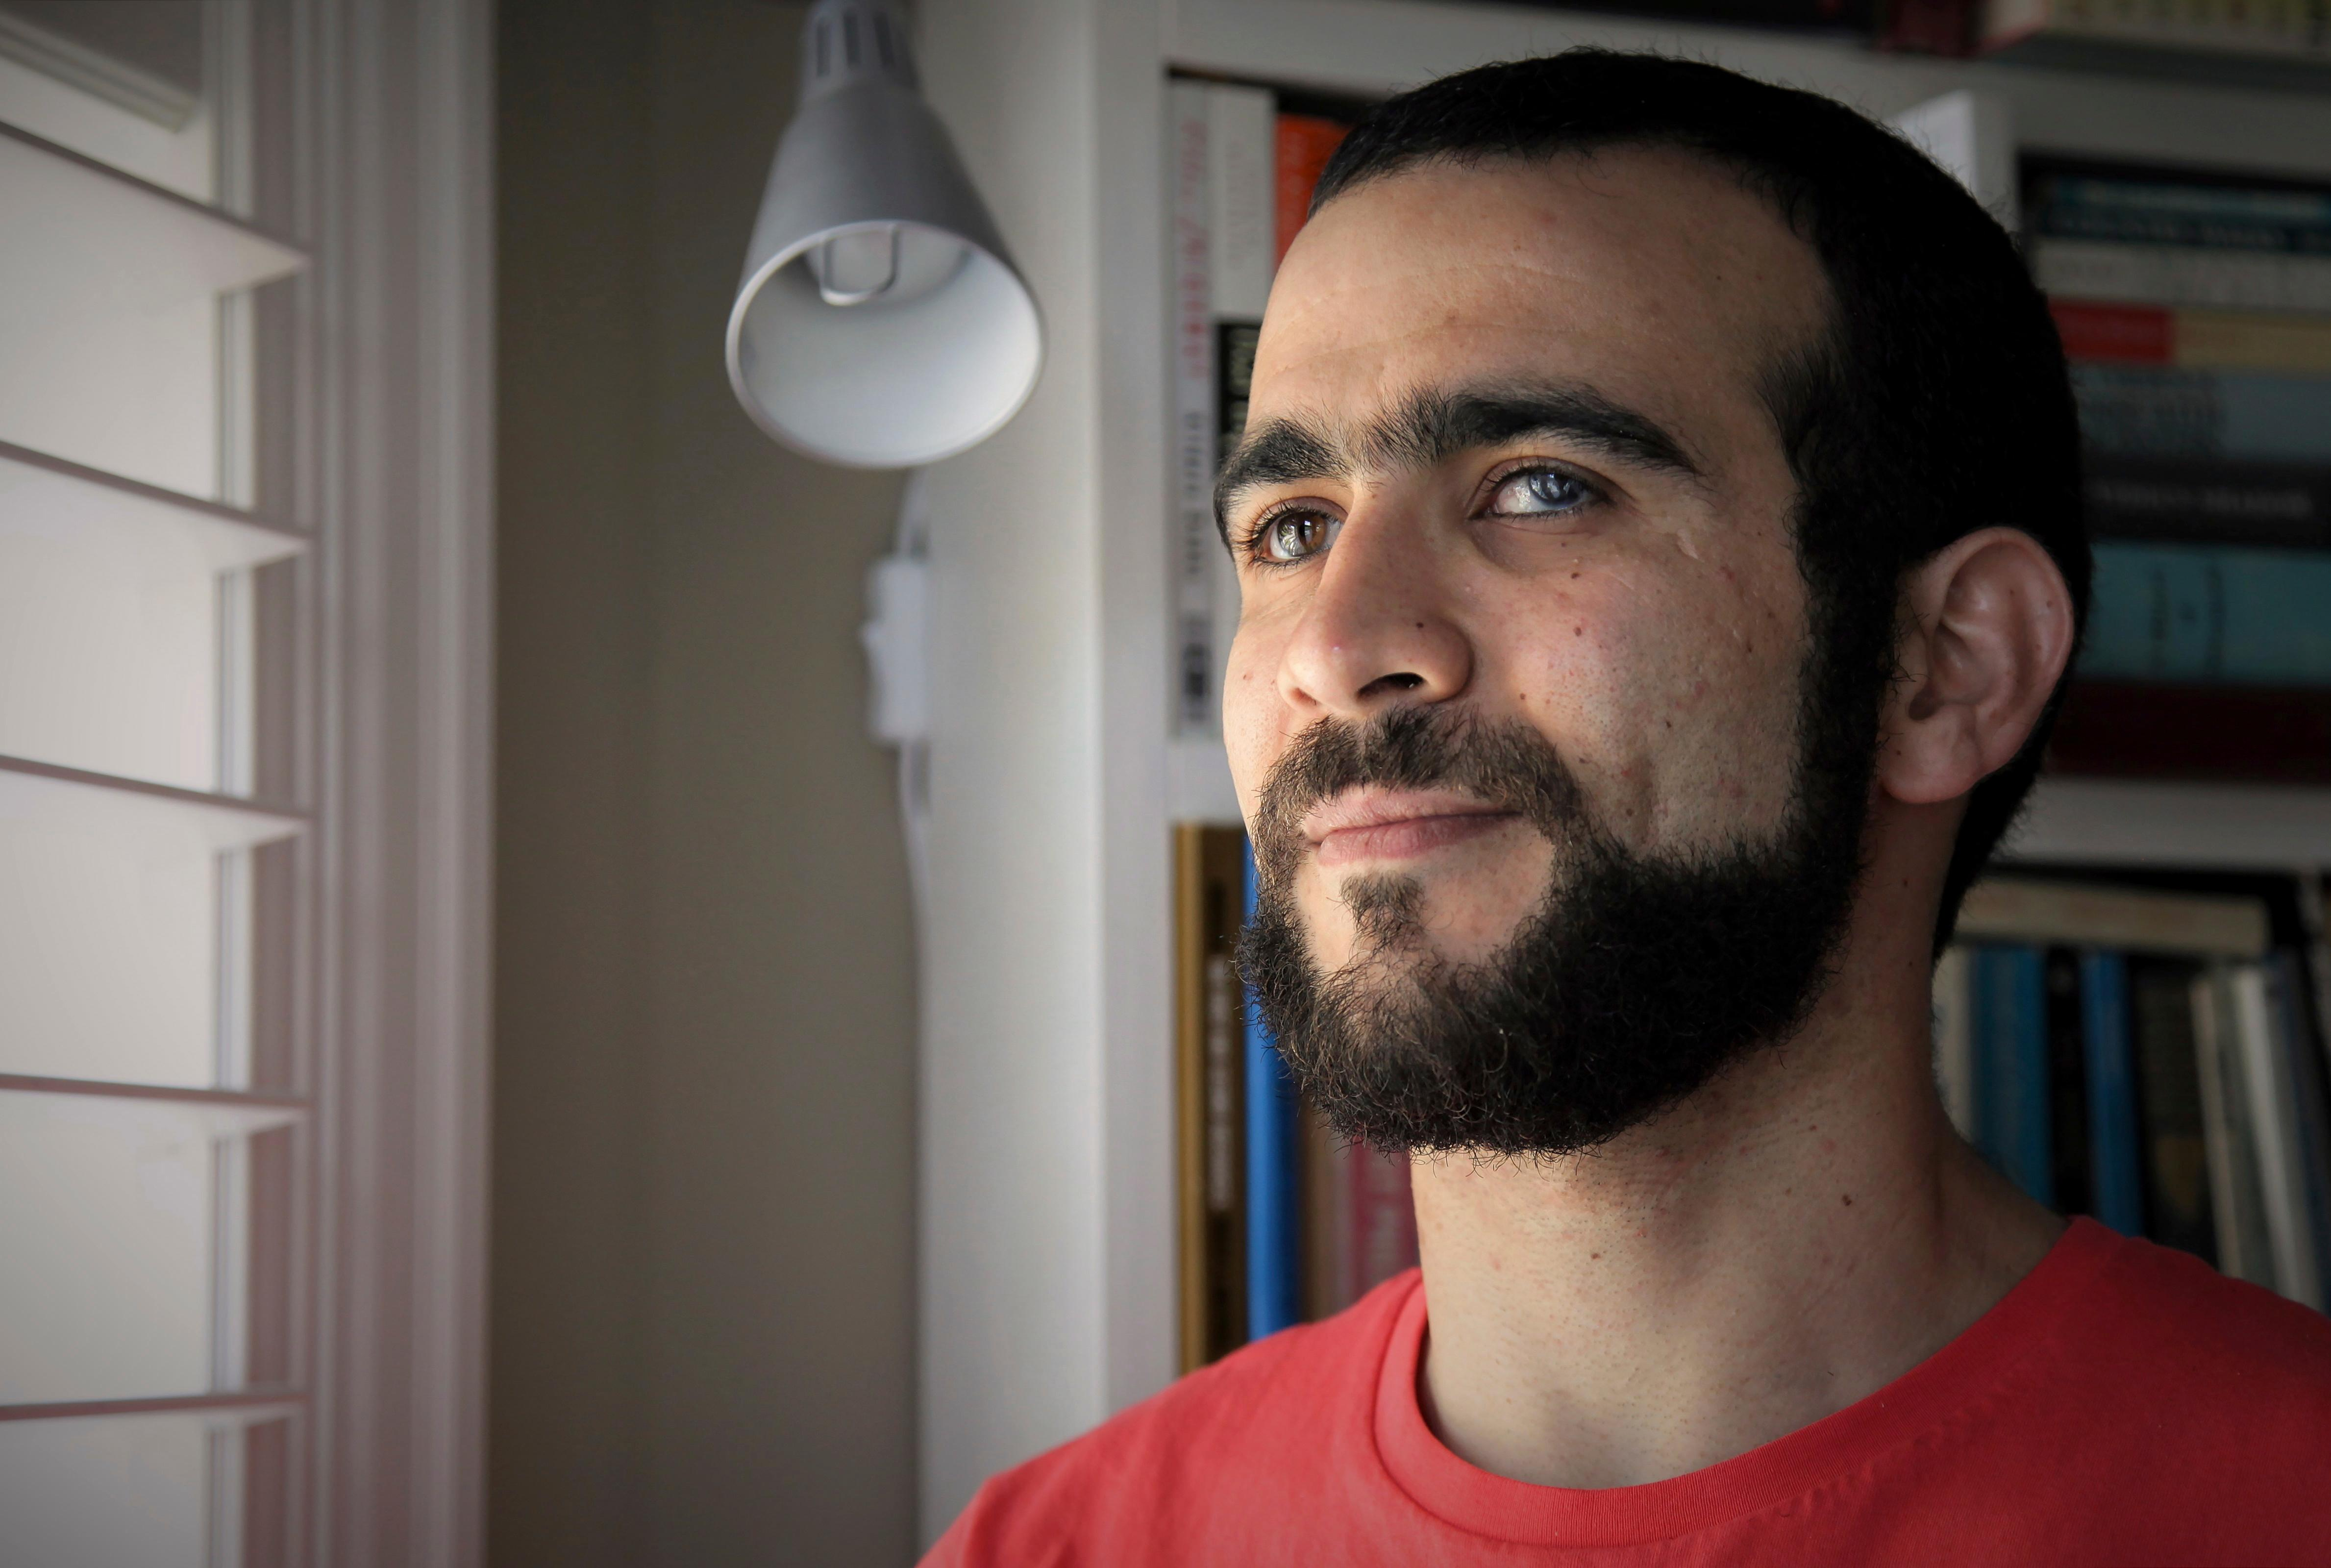 Former Guantanamo Bay prisoner Omar Khadr, 30, is seen at a home in Mississauga, Ont., on Thursday, July 6, 2017. The federal government has paid Khadr $10.5 million and apologized to him for violating his rights during his long ordeal after capture by American forces in Afghanistan in July 2002.  (Colin Perkel/The Canadian Press via AP)